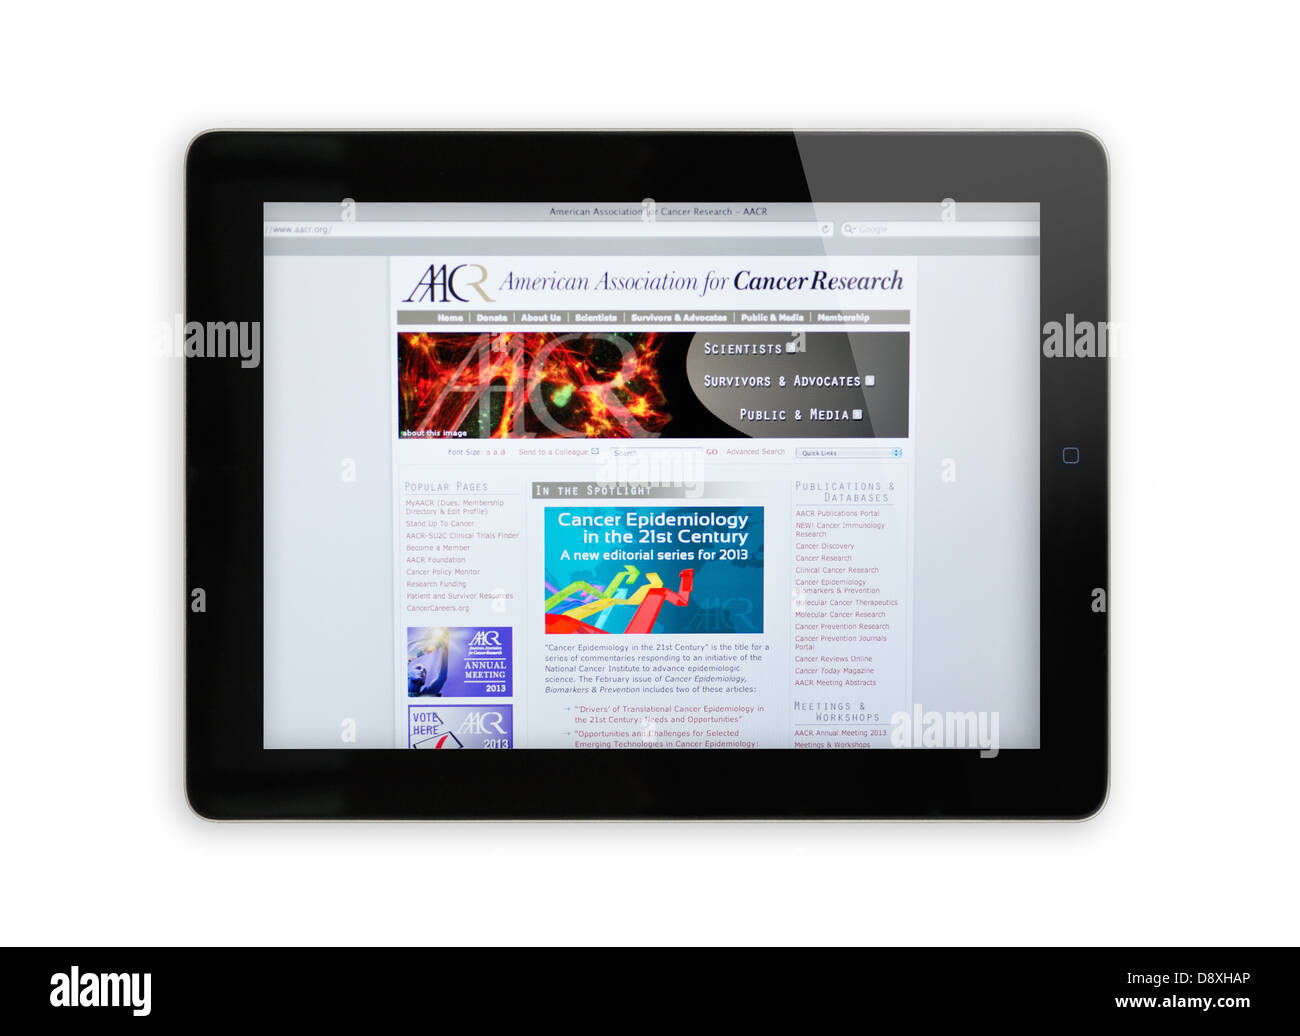 American Association for Cancer Research website on iPad - Stock Image